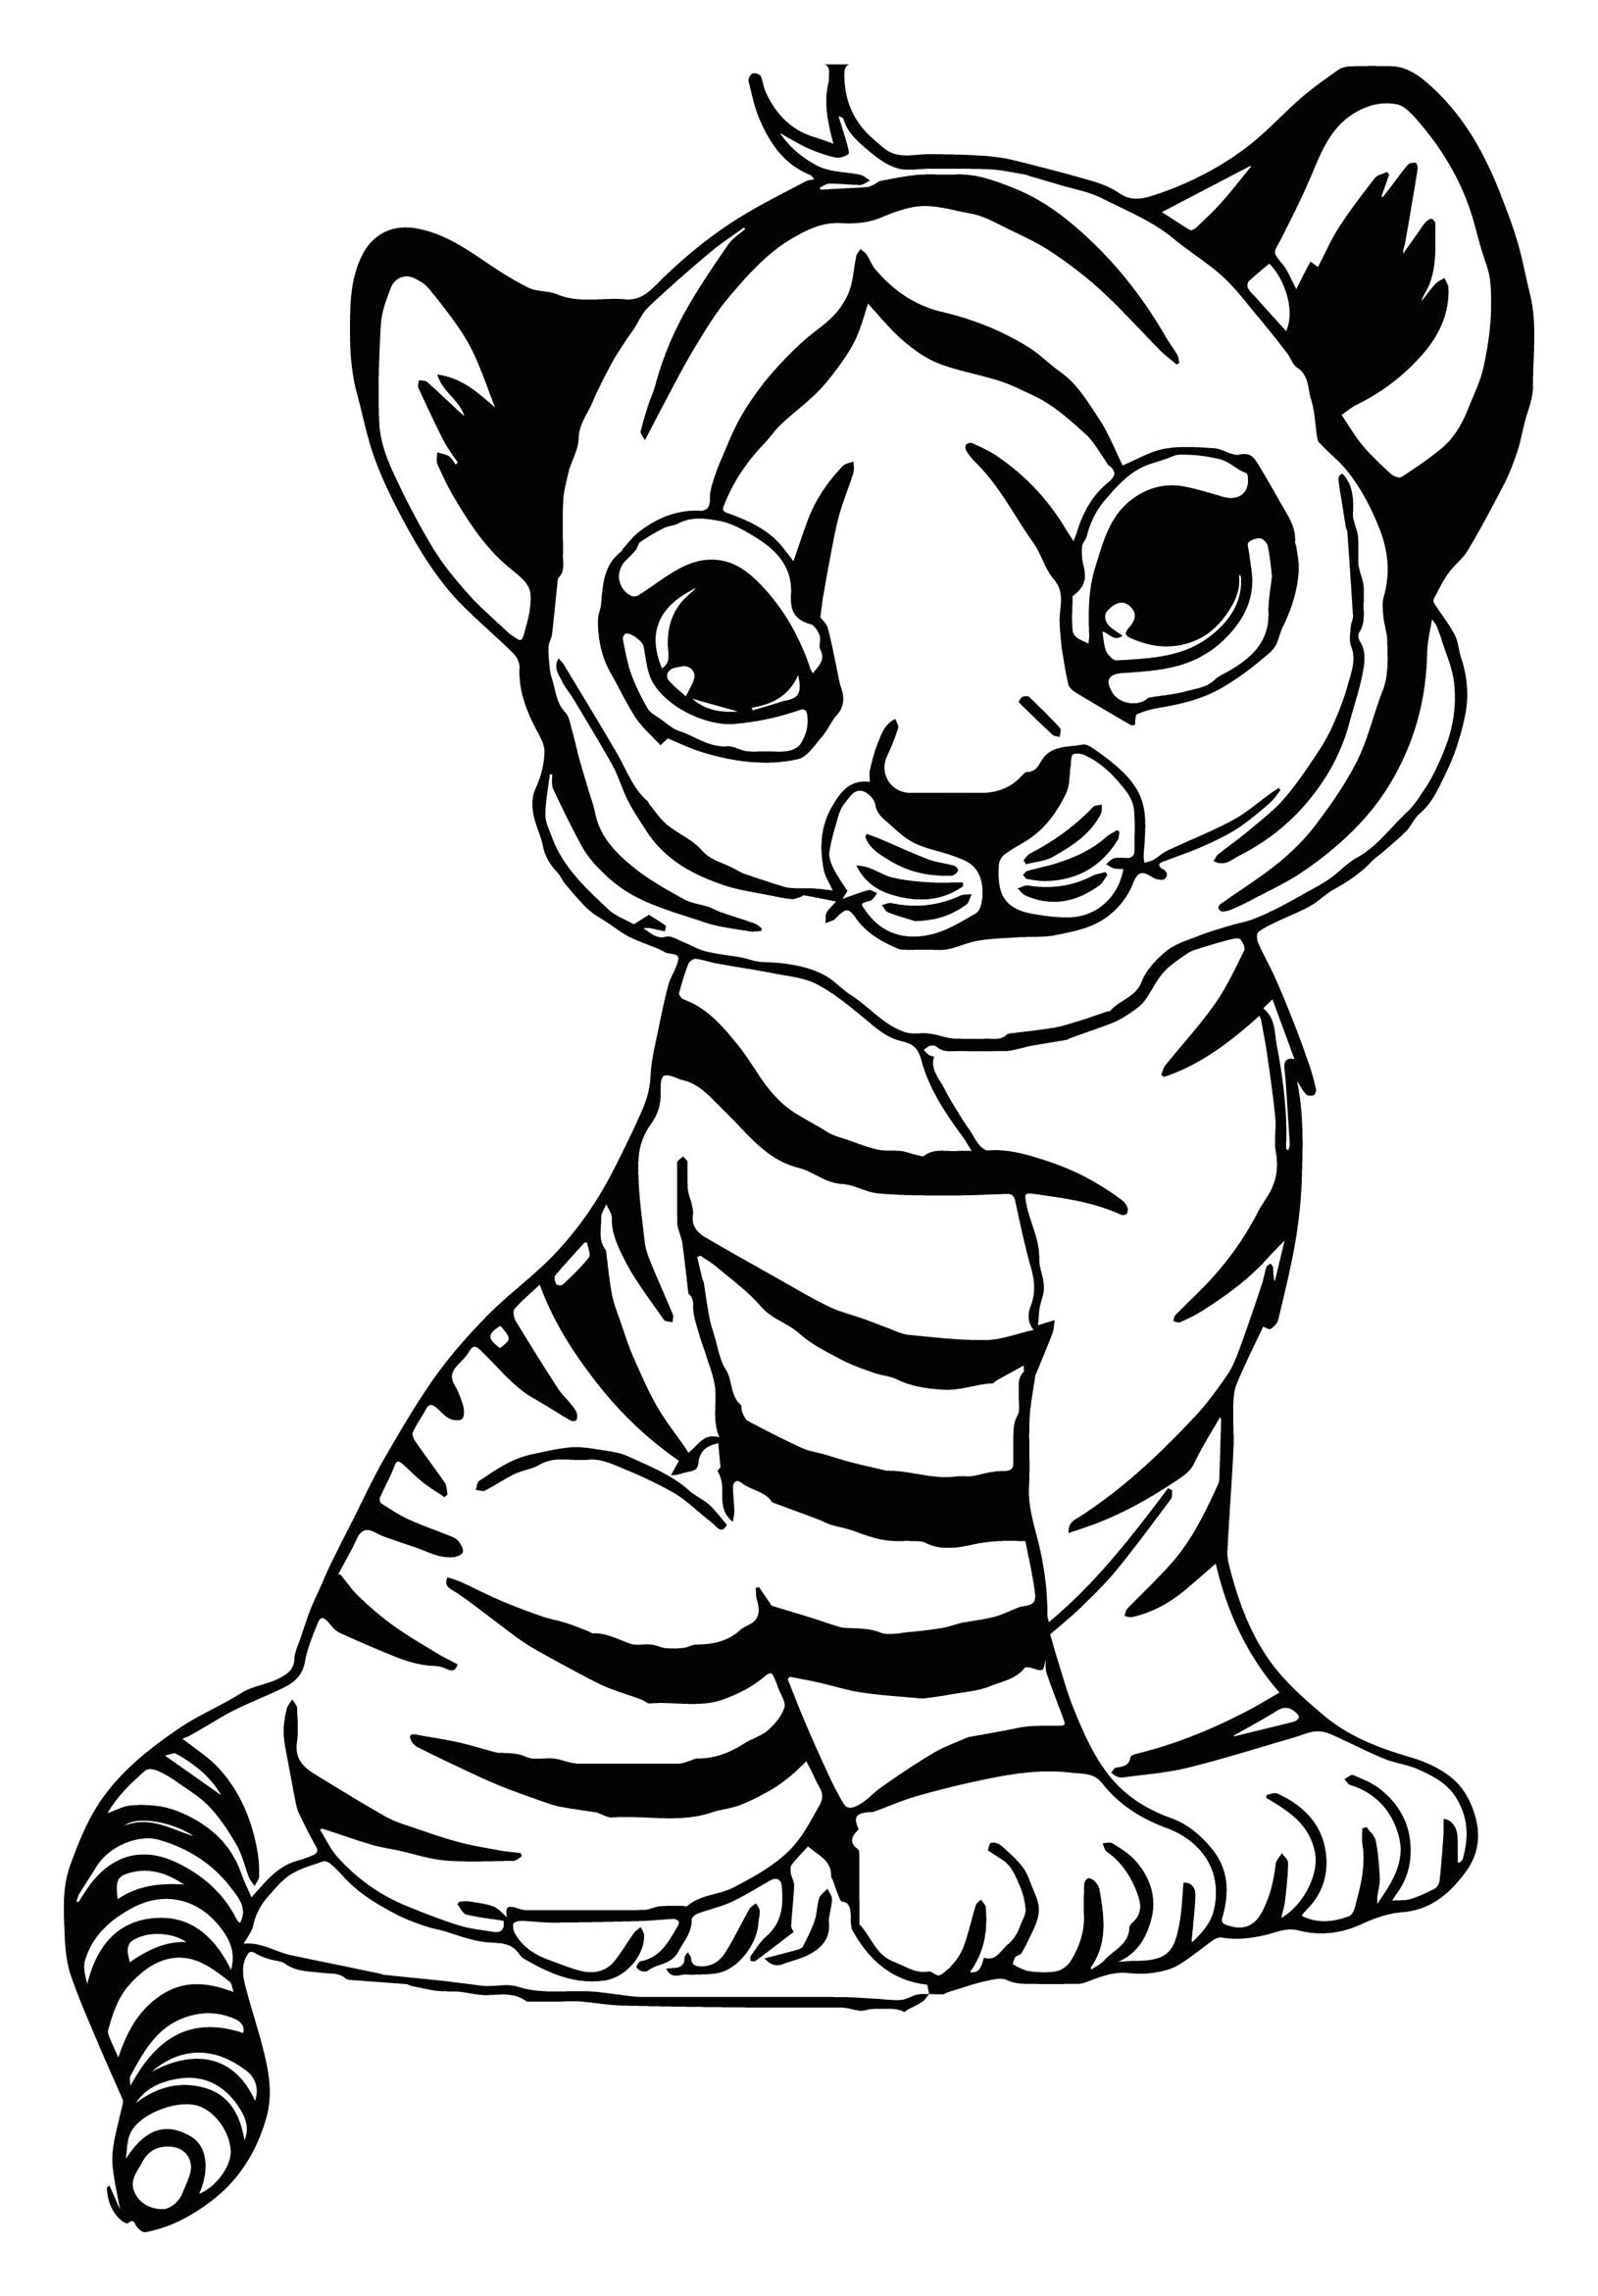 Cute Baby Tiger Coloring Pages  Tigers to print for free Tigers Kids Coloring Pages